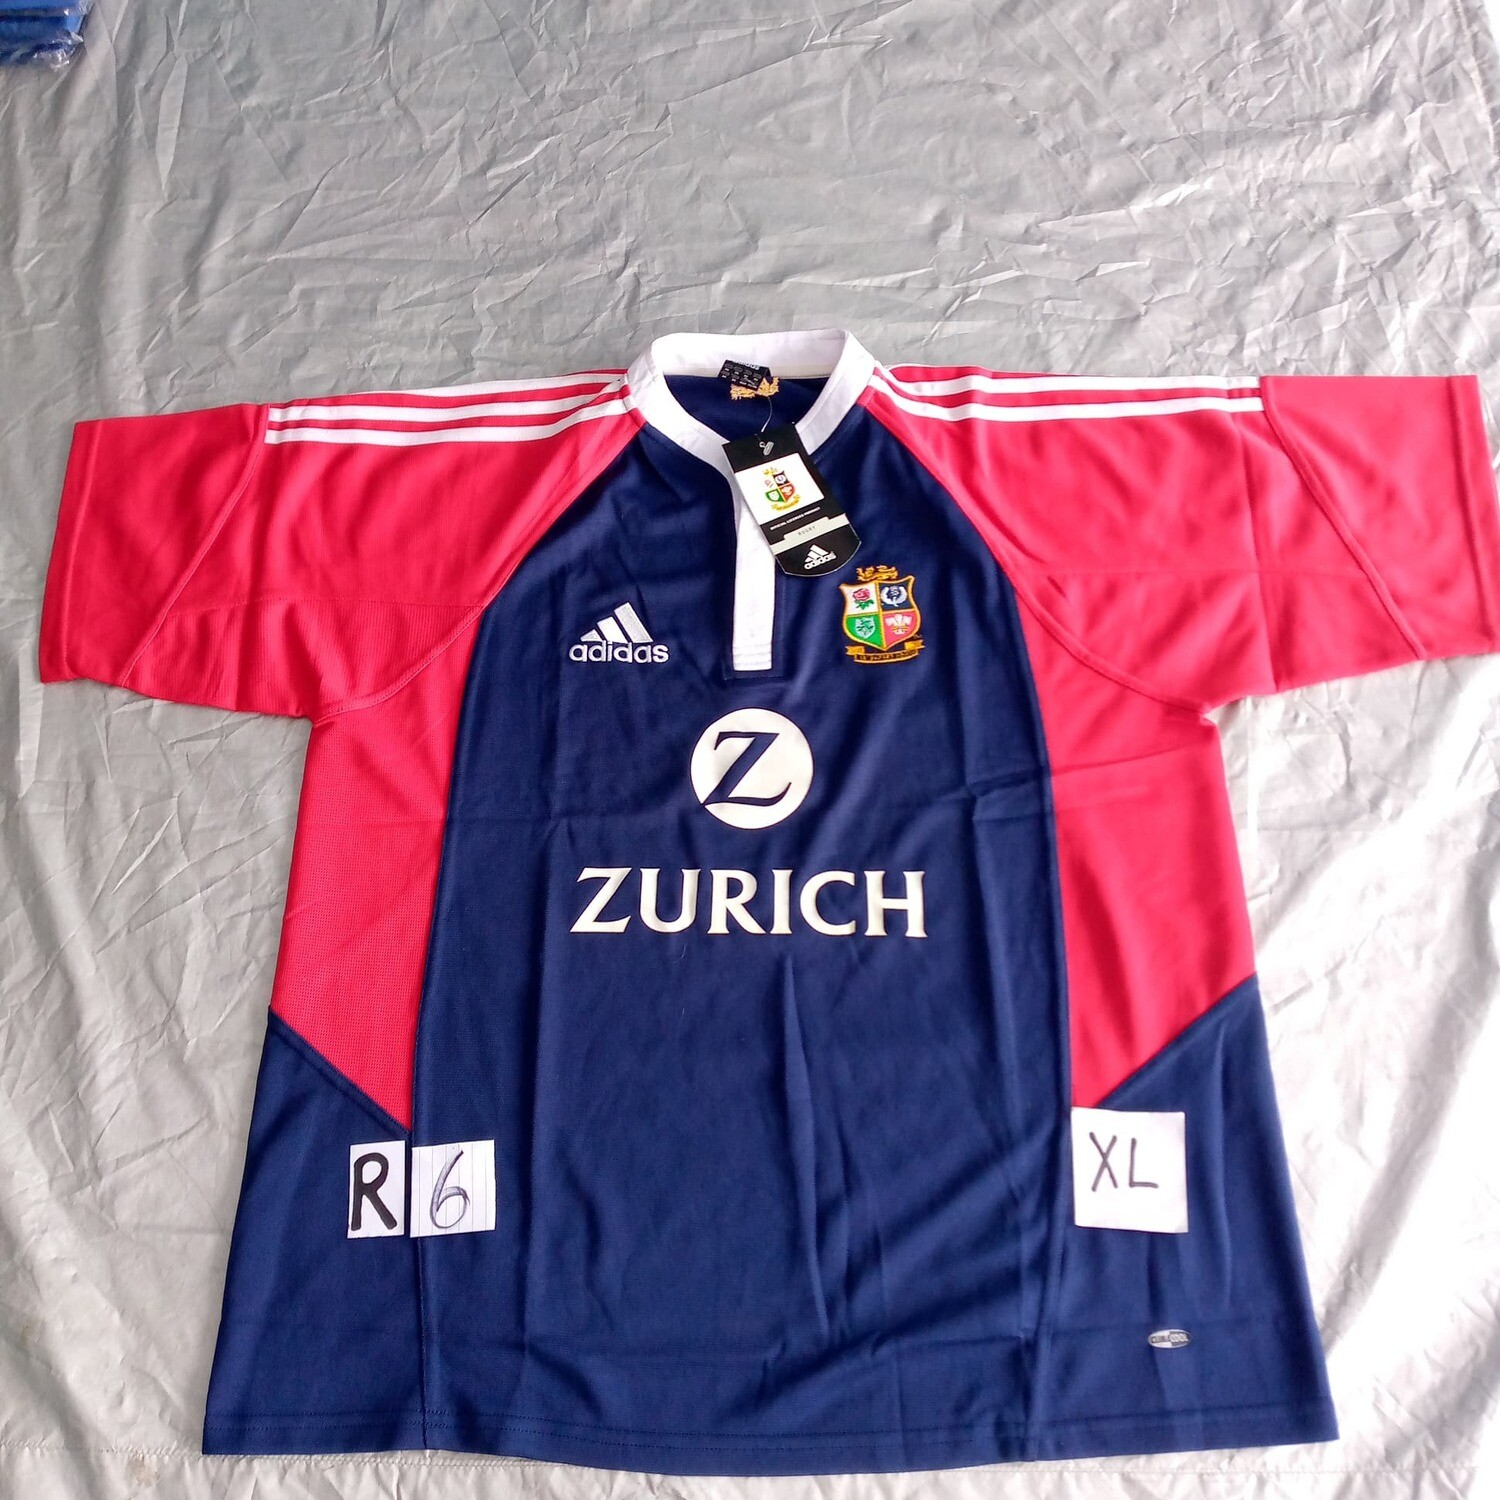 R6 New Zealand 2005 Tour Rugby Maglia Jersey Shirt Rugby 2005 NEW ZELAND XL